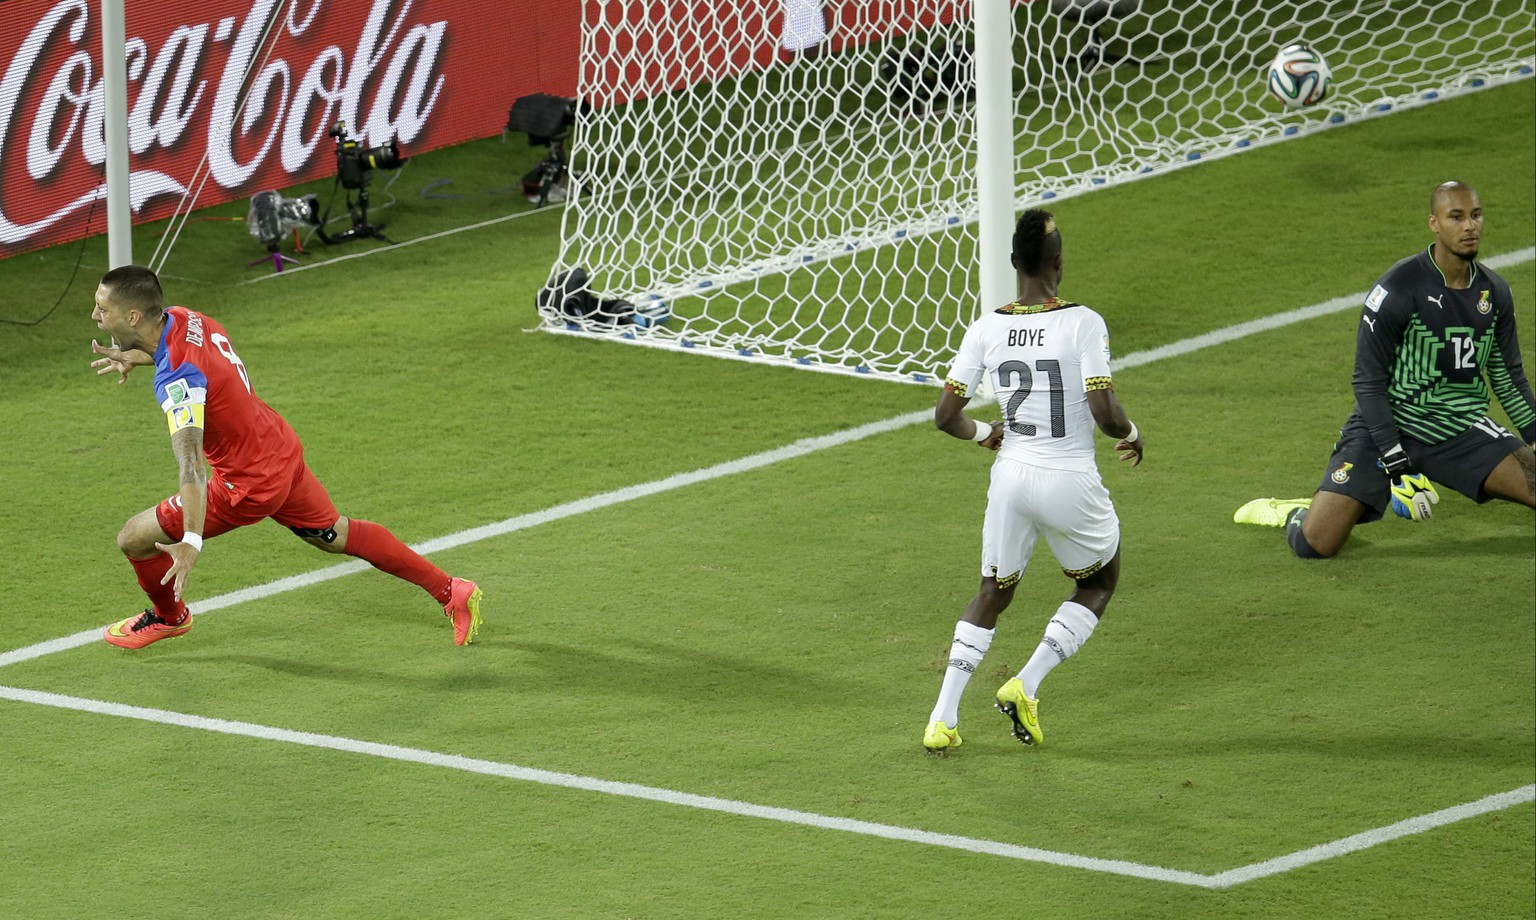 United States' Clint Dempsey, left, celebrates scoring the opening goal past Ghana's goalkeeper Adam Kwarasey, right, during the group G World Cup soccer match between Ghana and the United States at the Arena das Dunas in Natal, Brazil, Monday, June 16, 2014. (AP Photo/Hassan Ammar)